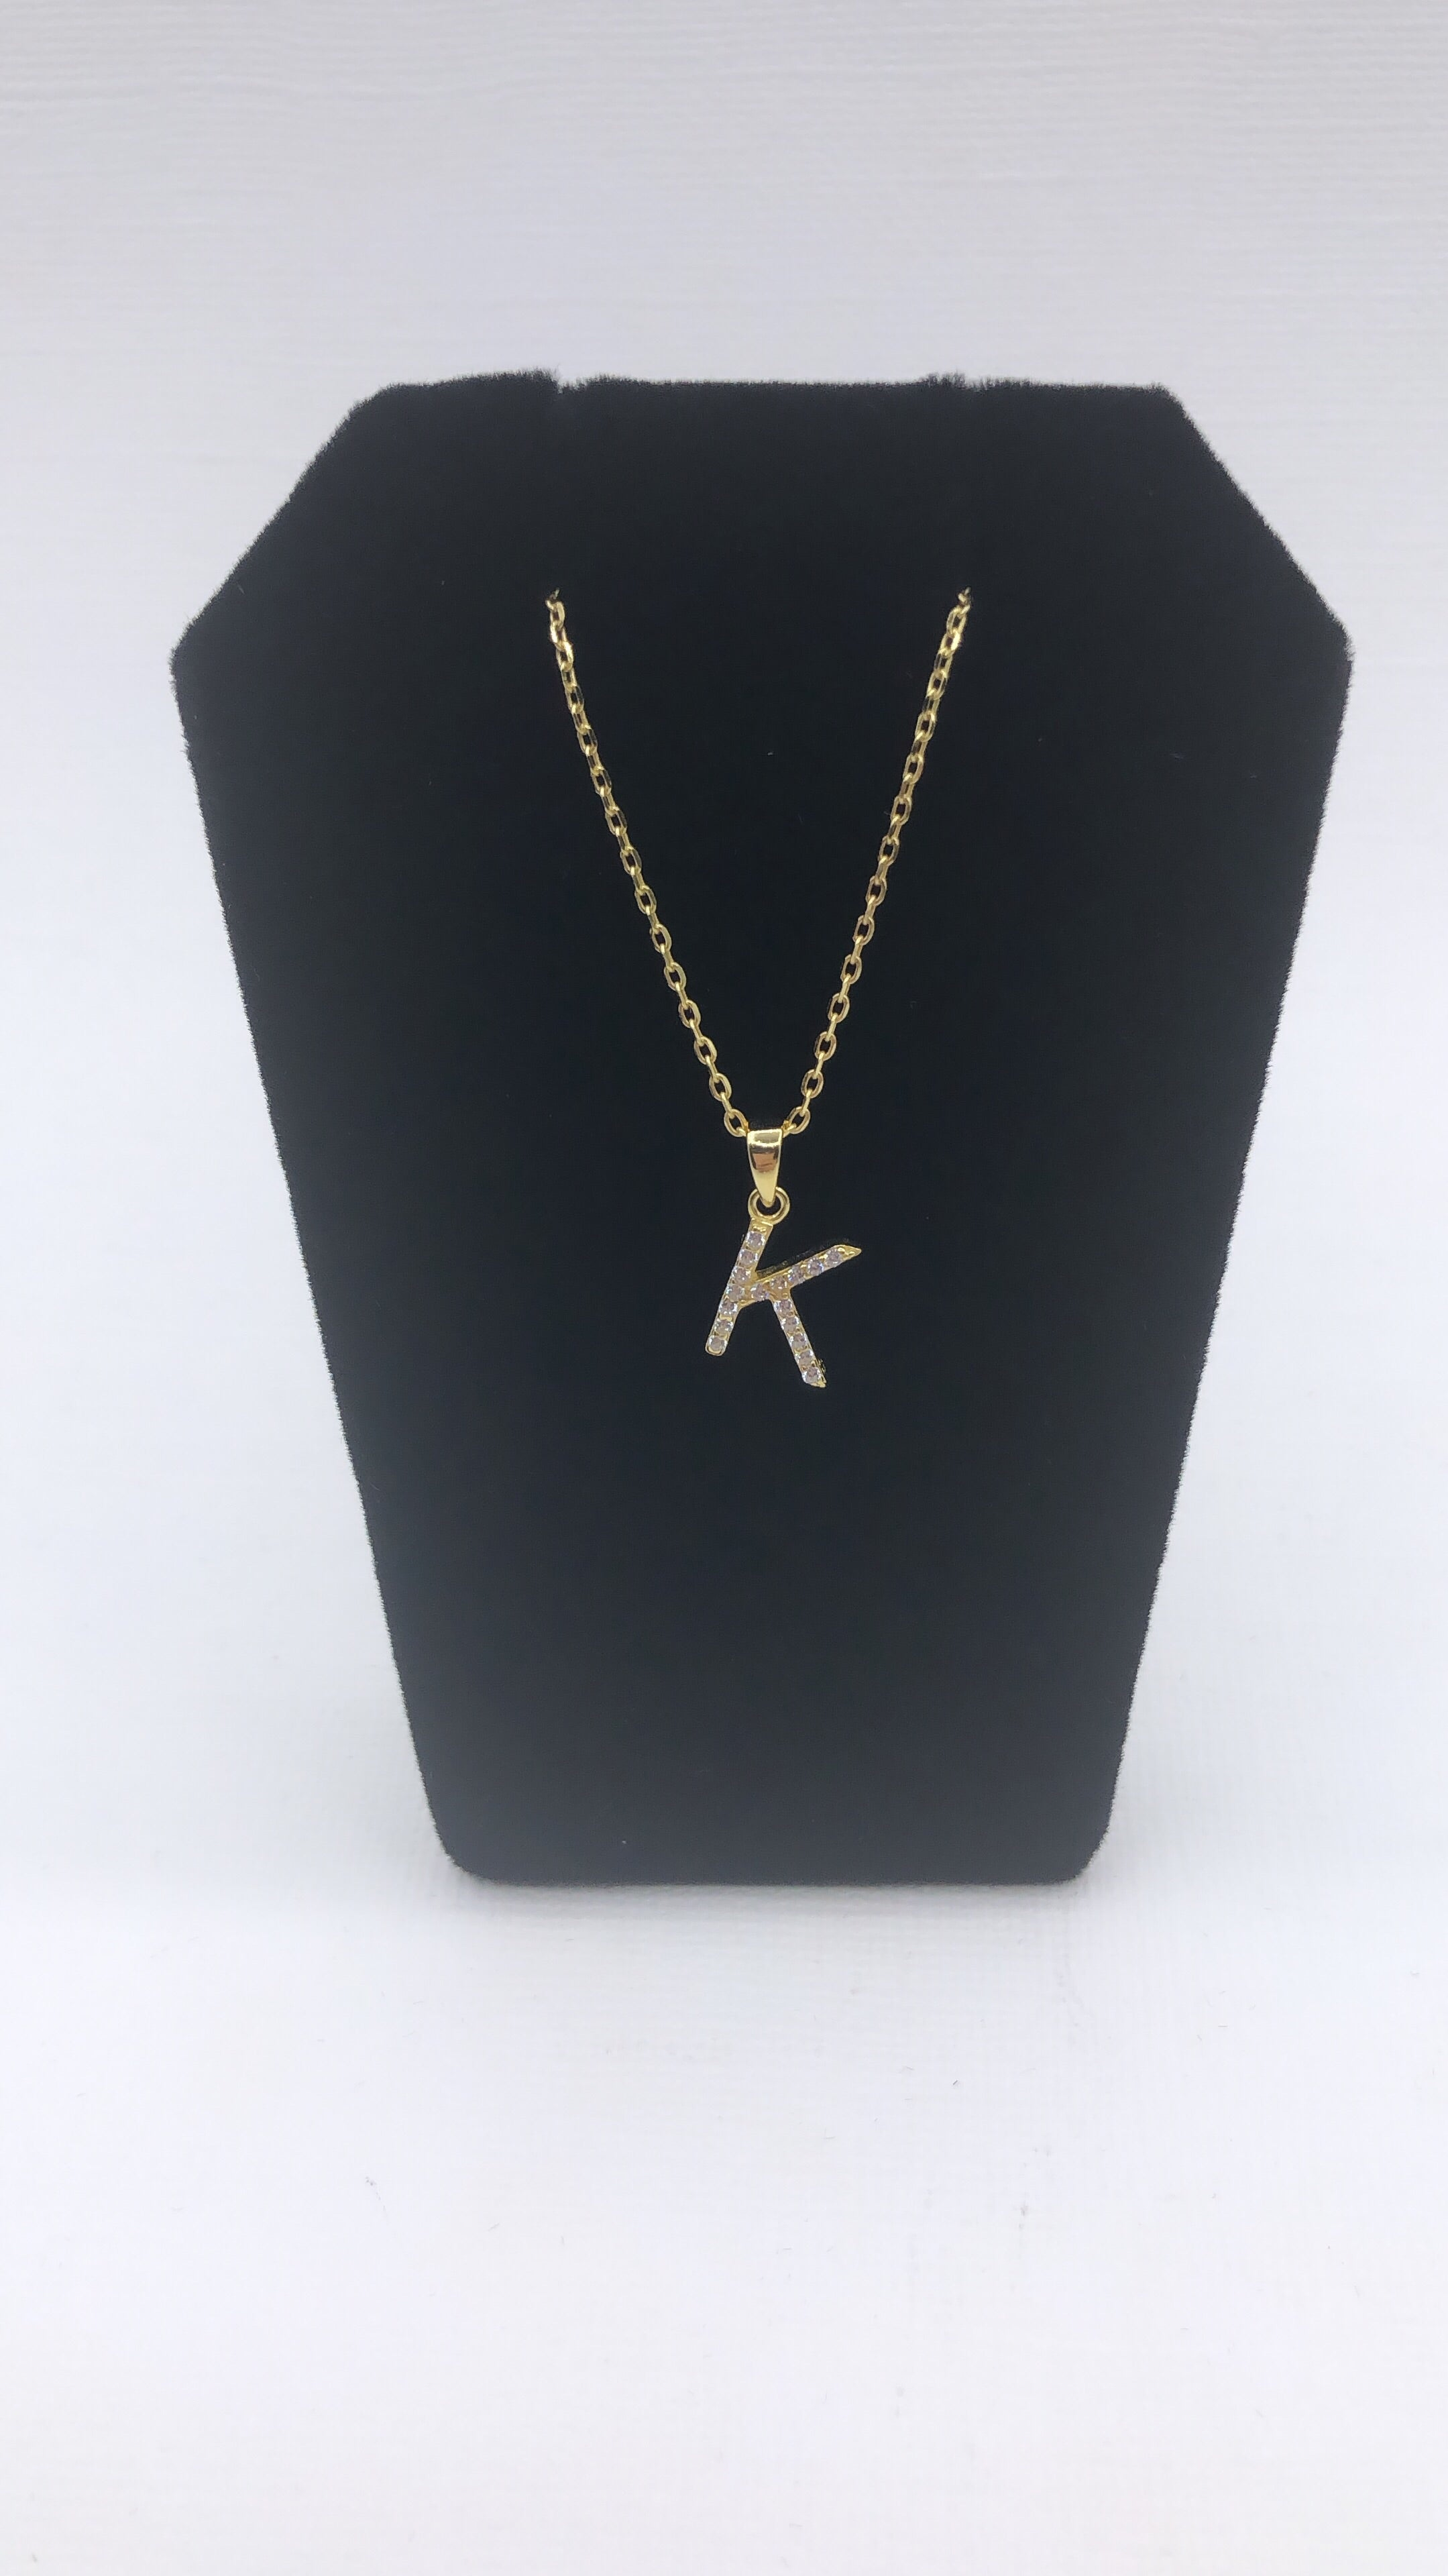 Personalize Your Initial Necklace